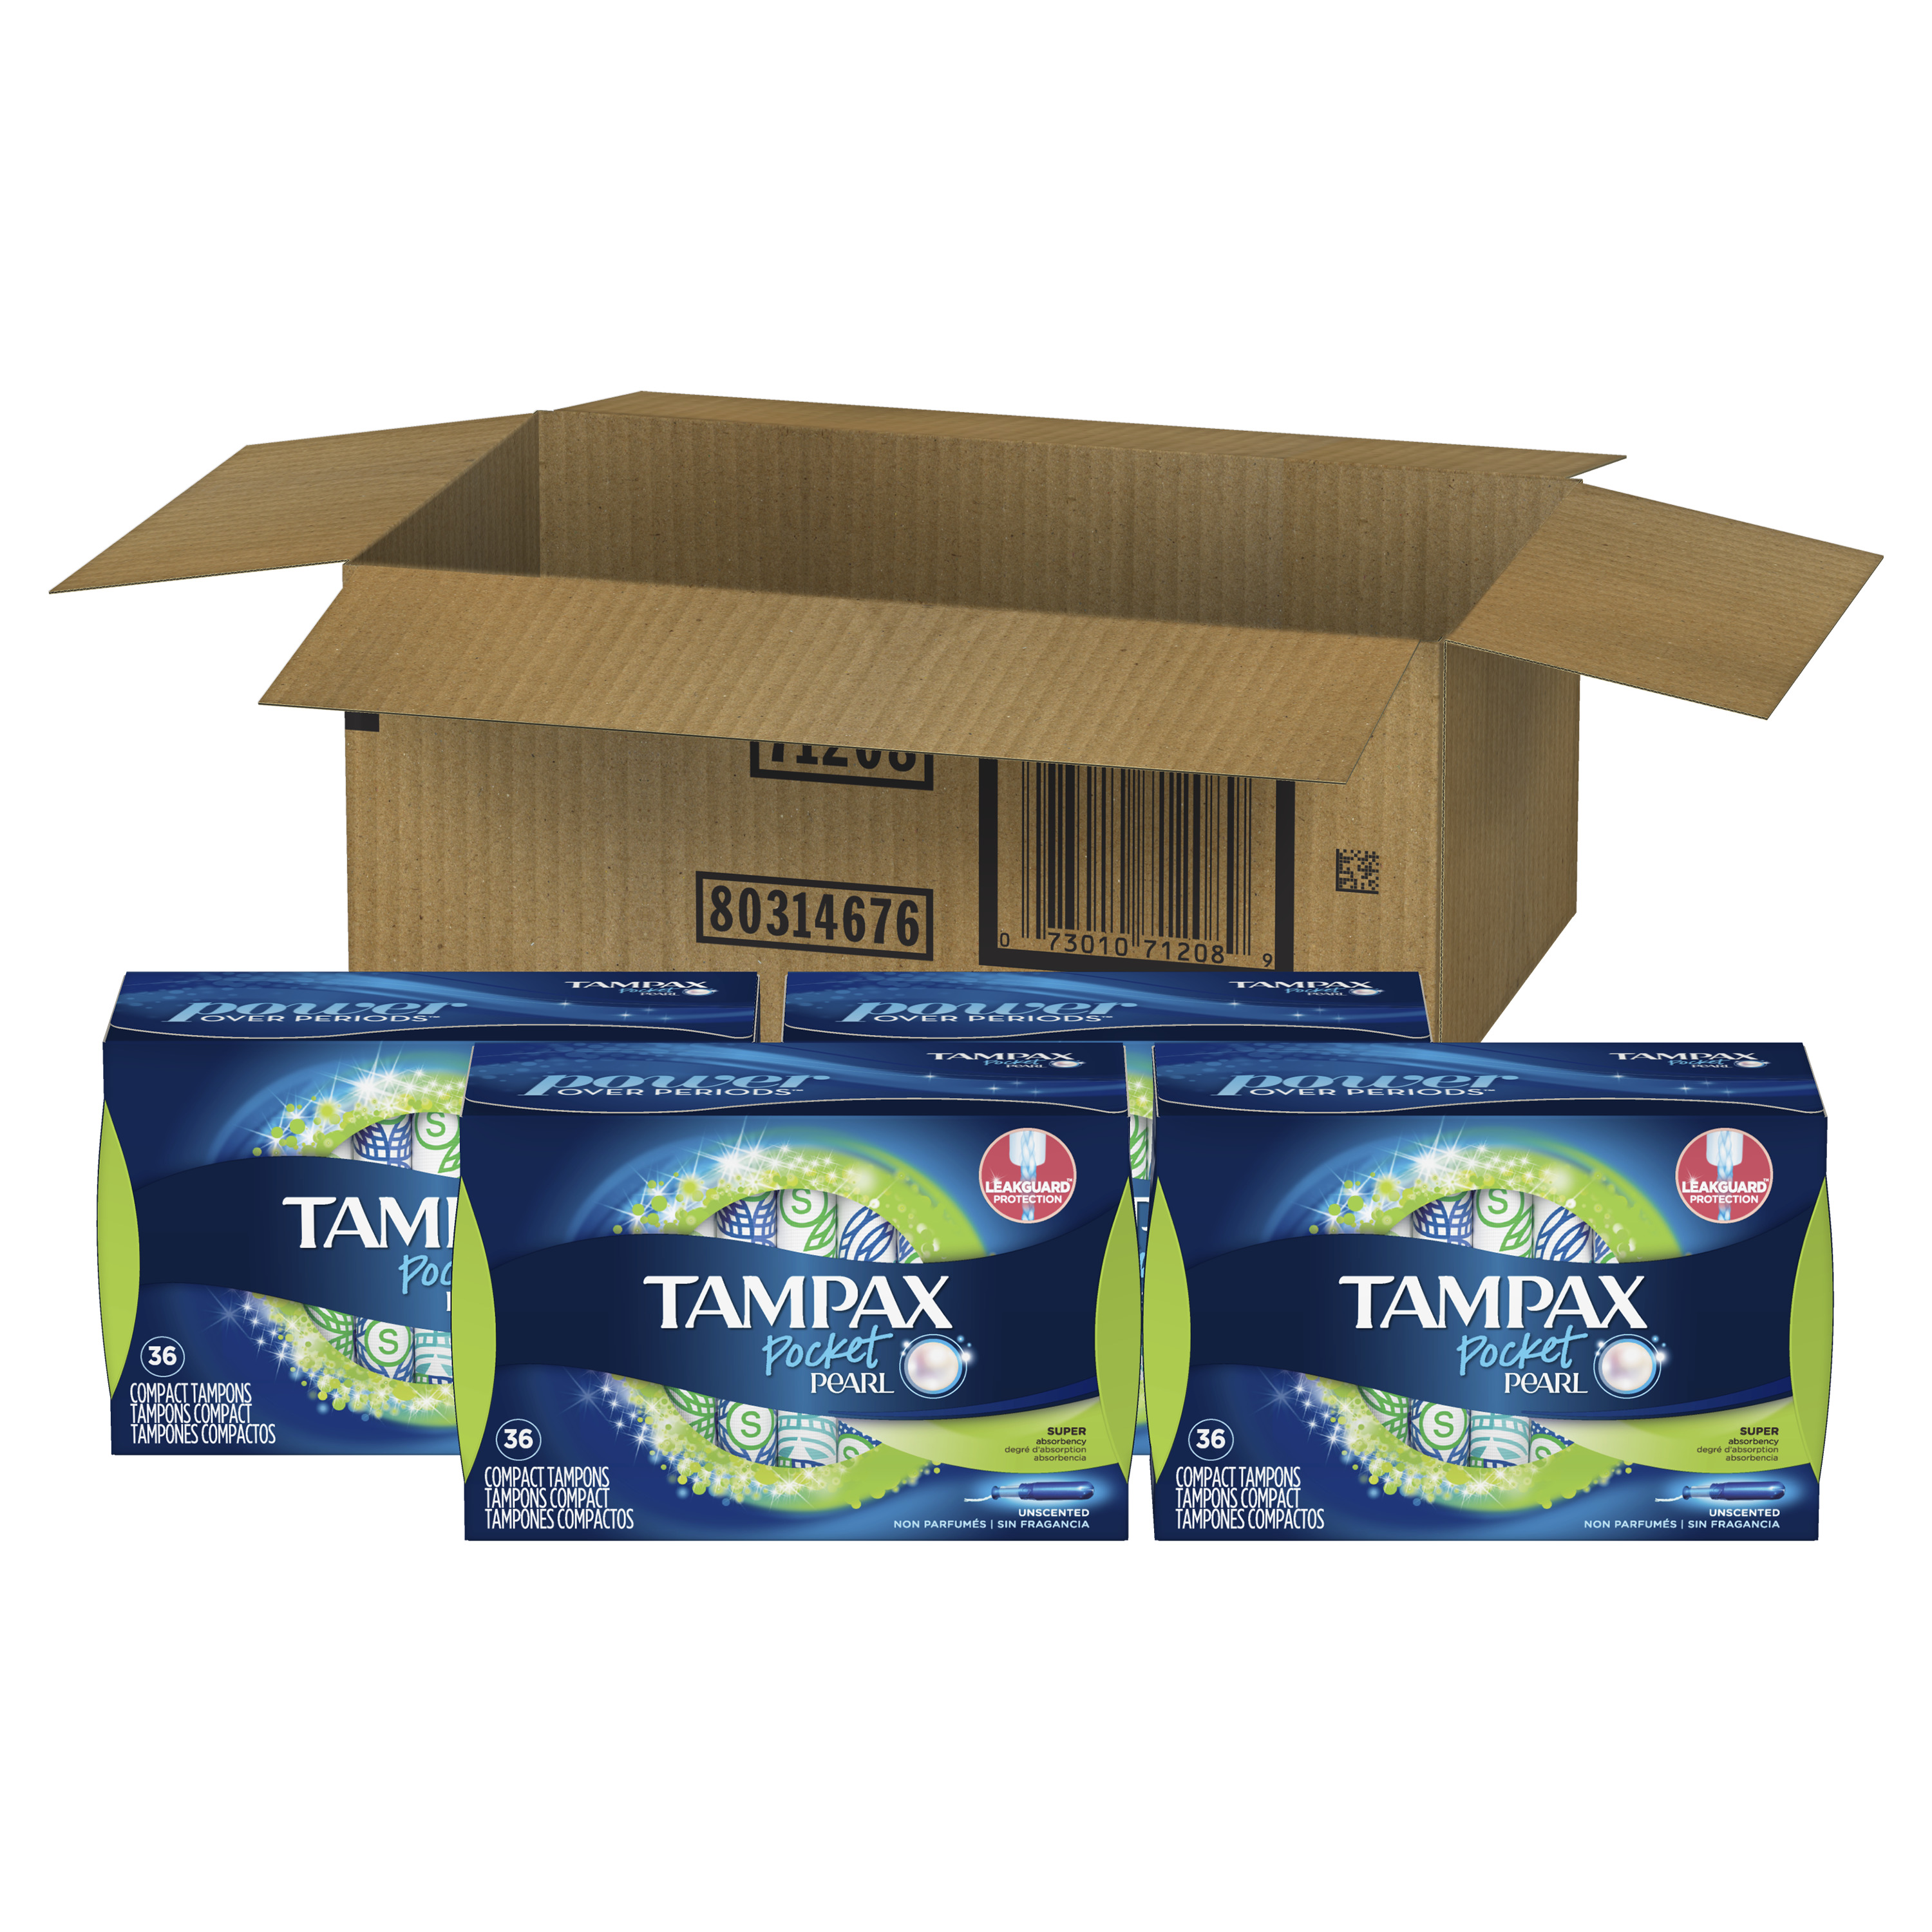 Tampax Pocket Pearl Plastic Tampons, Super Absorbency, Unscented, 144 Count